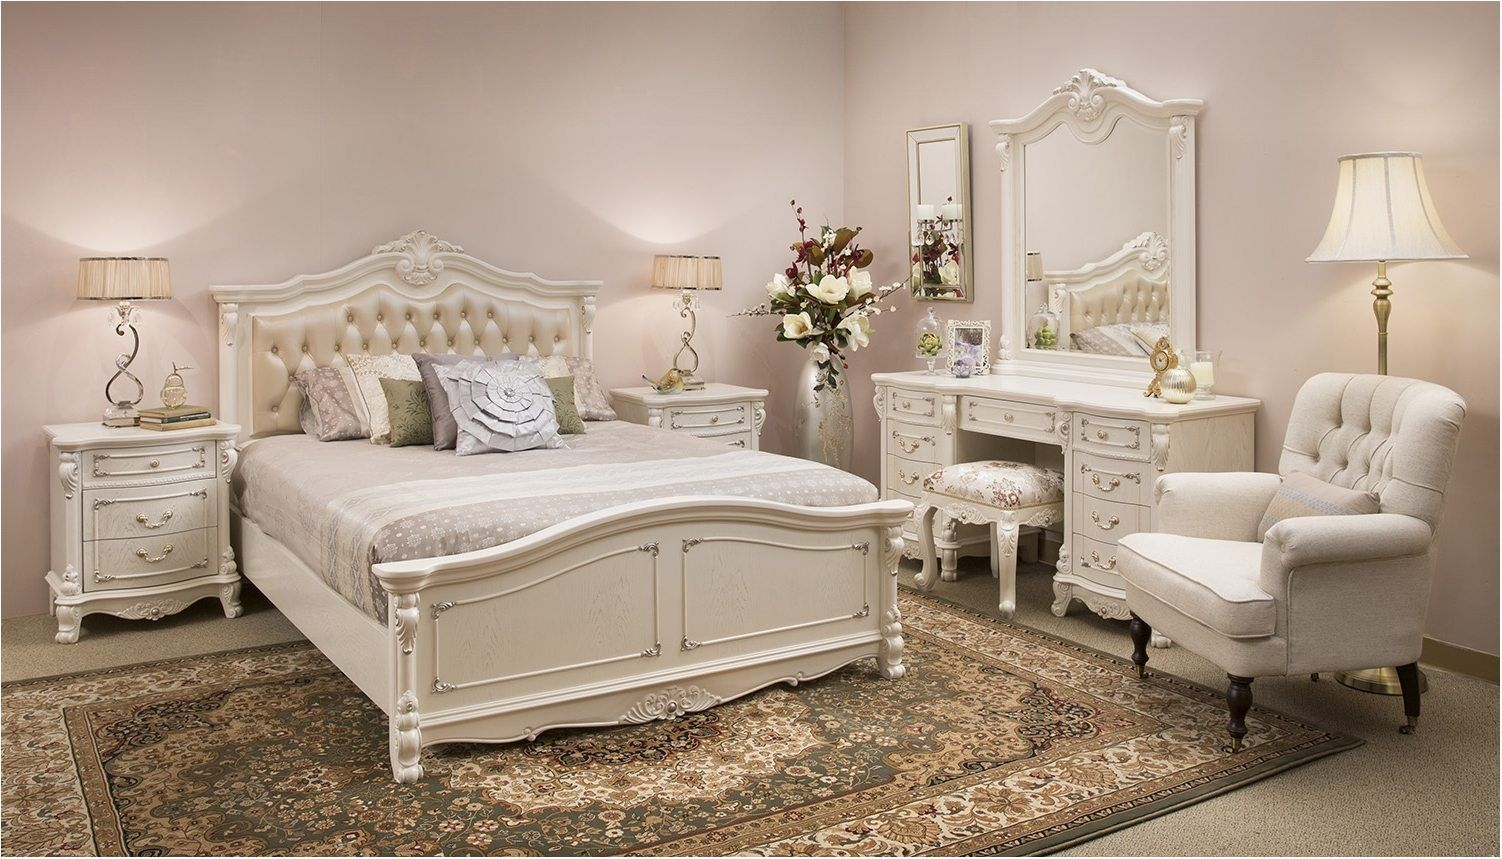 Furniture Stores Near Me Bedroom furniture stores